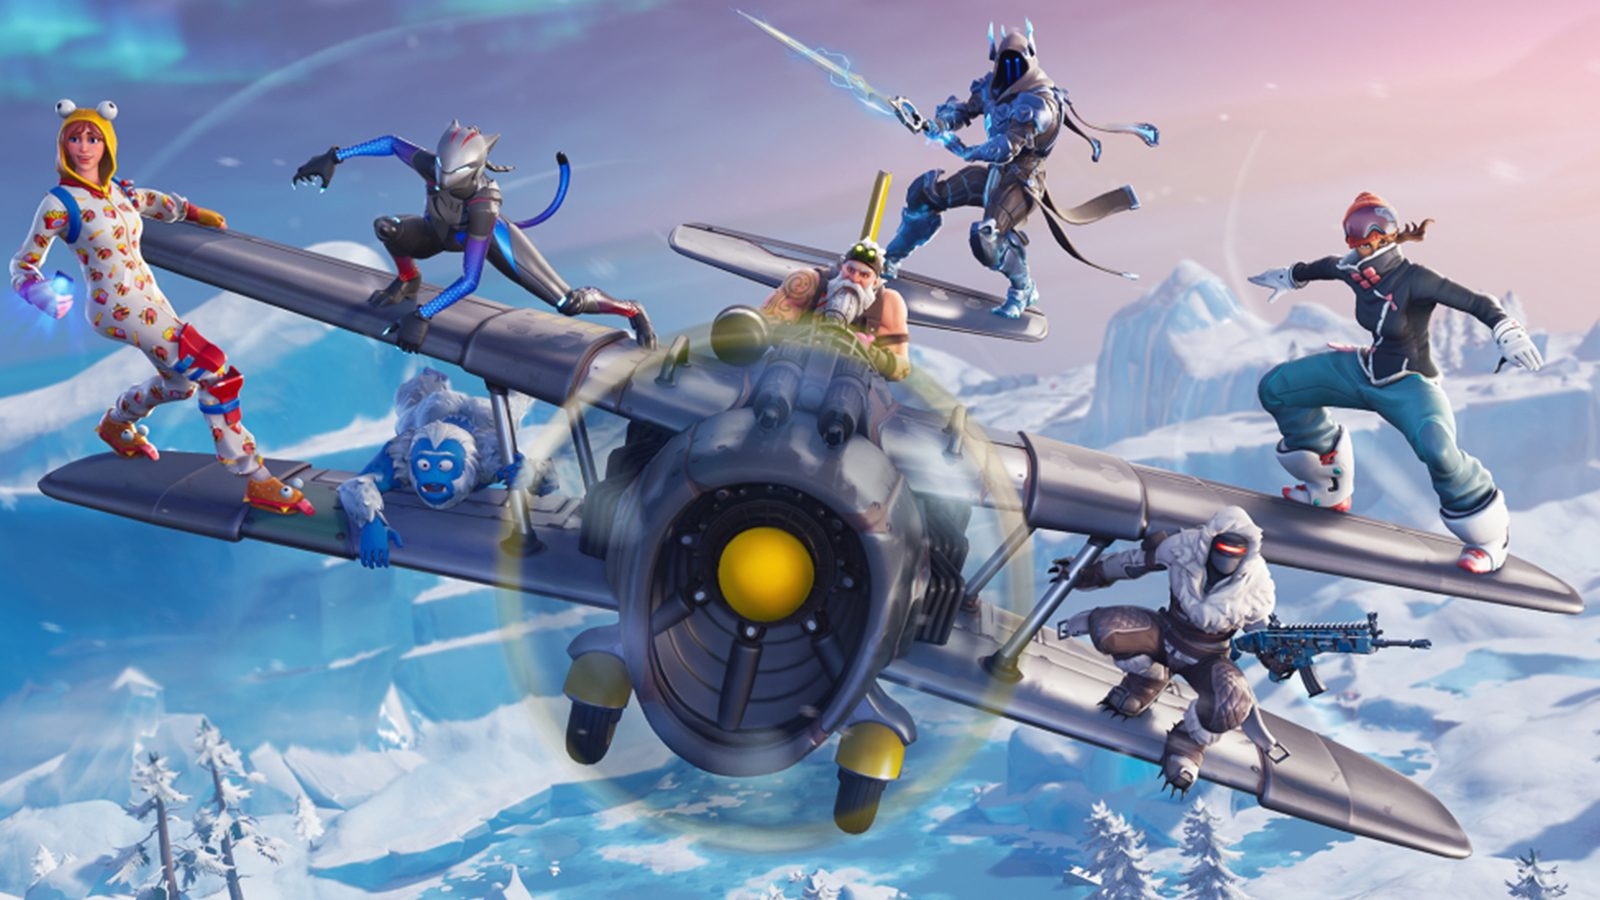 Epic hit with class-action suit over hacked Fortnite accounts